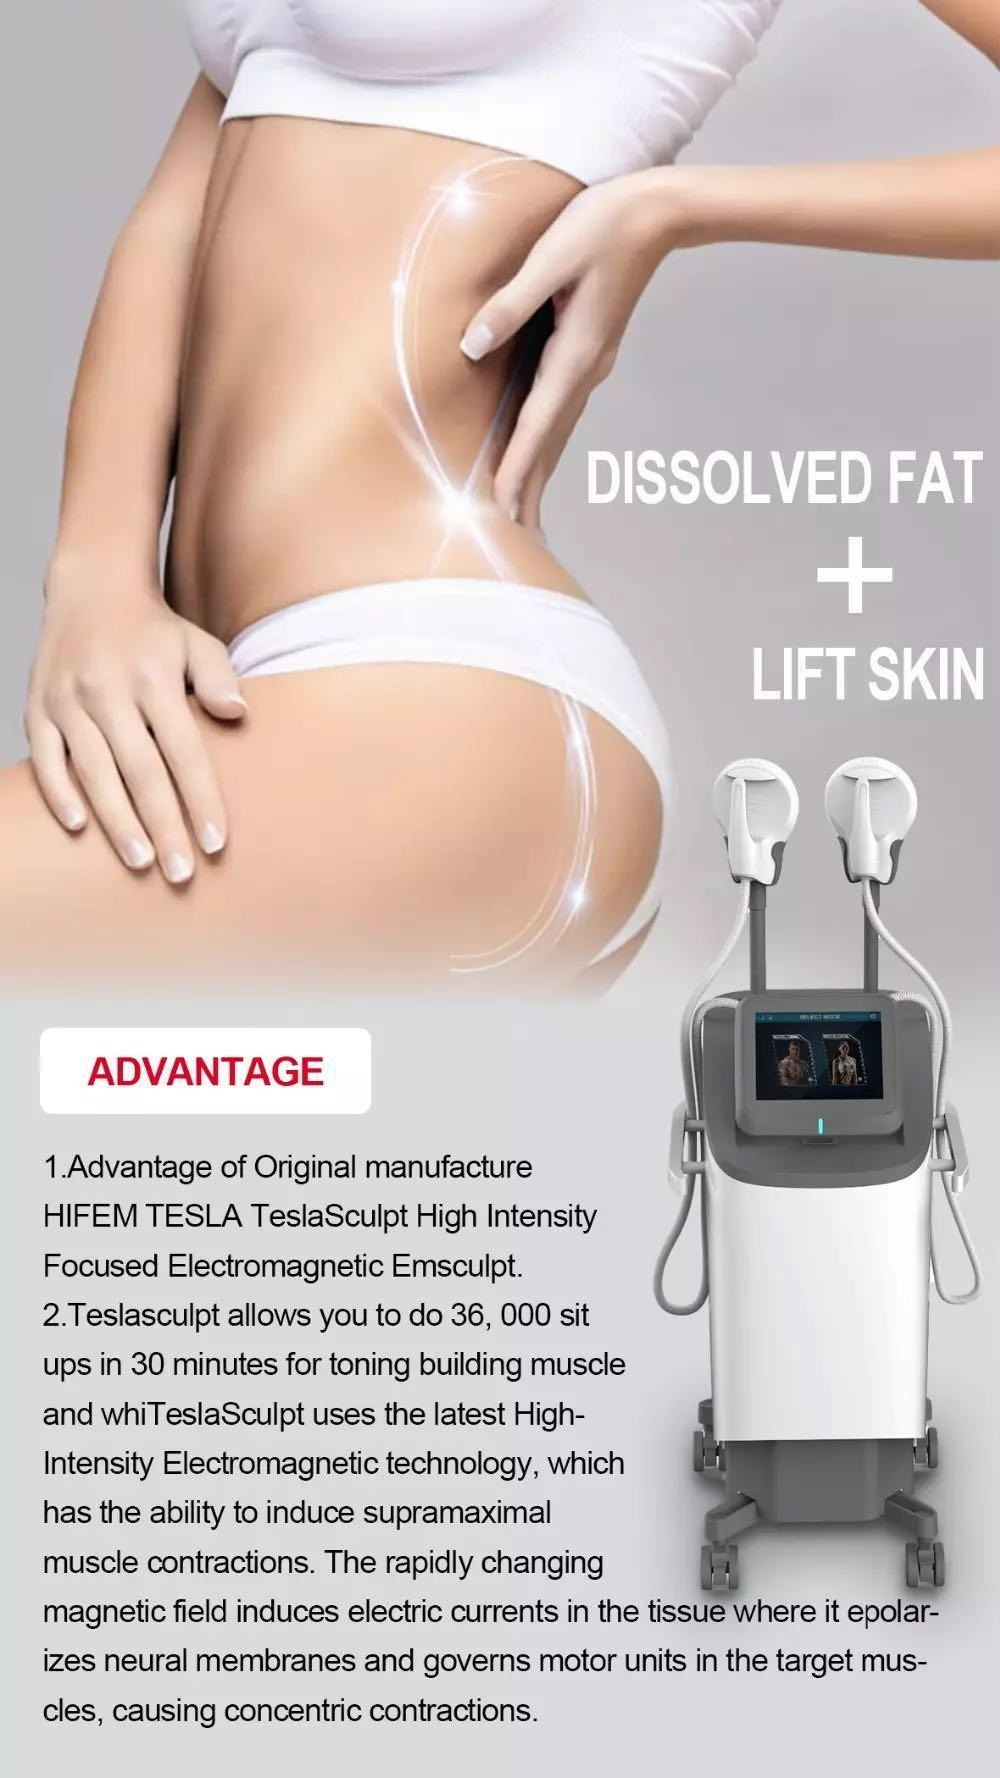 High-intensity Electromagnetic buttock lift abs stimulator fat removal machine ems tesla sculptor ems sculpt